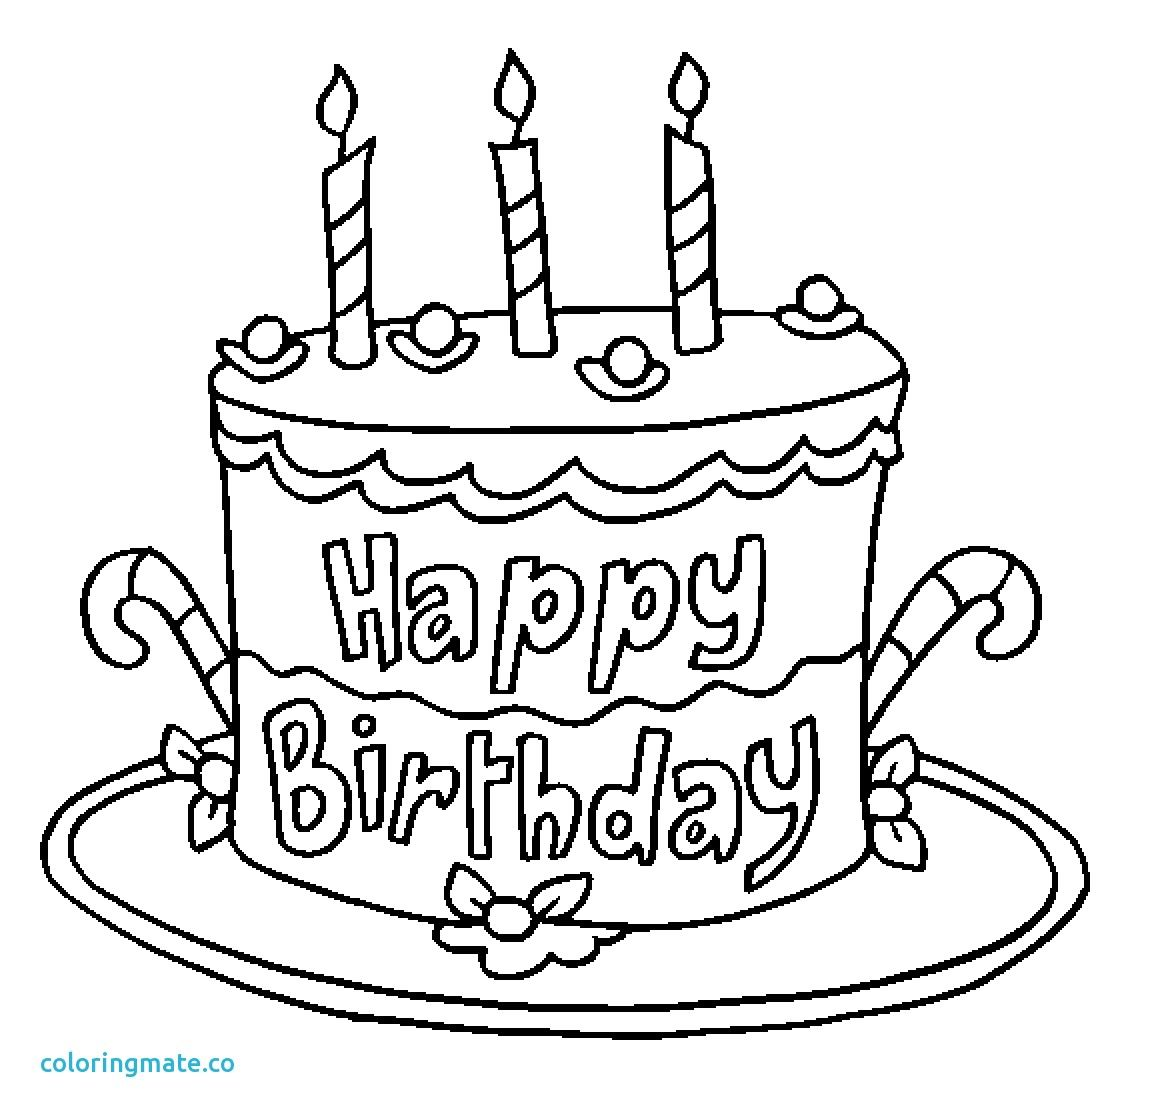 spongebob happy birthday coloring pages ; stunning-happy-birthday-coloring-page-elegant-colour-drawing-wallpaper-picture-of-spongebob-trends-and-meme-inspiration